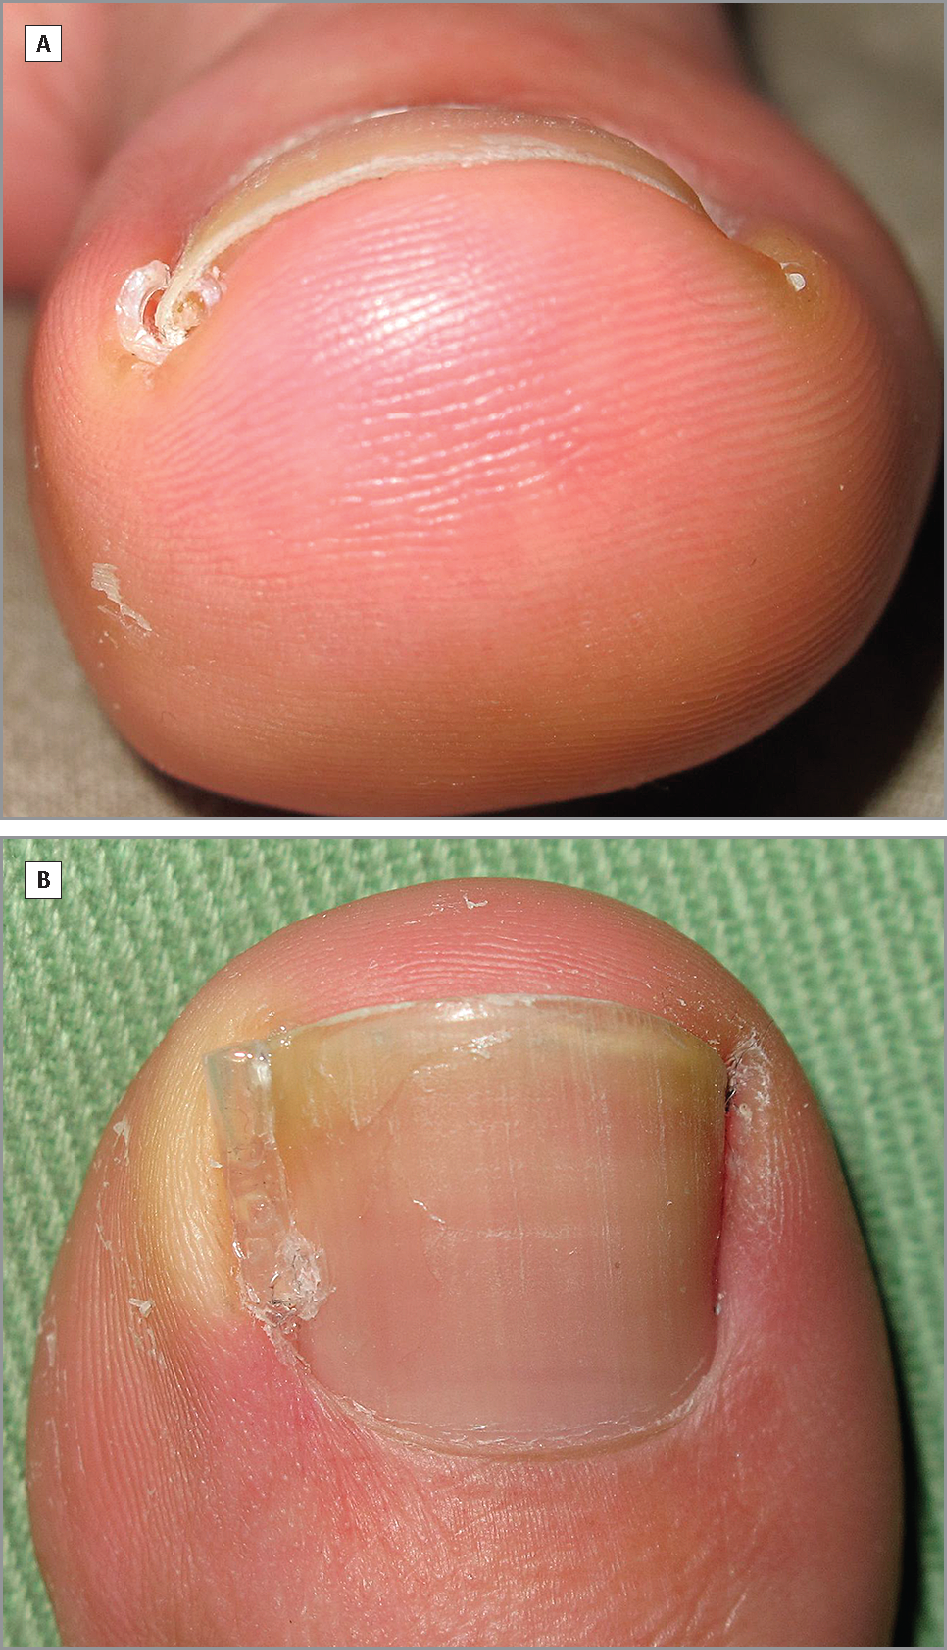 A Conservative Method To Gutter Splint Ingrown Toenails